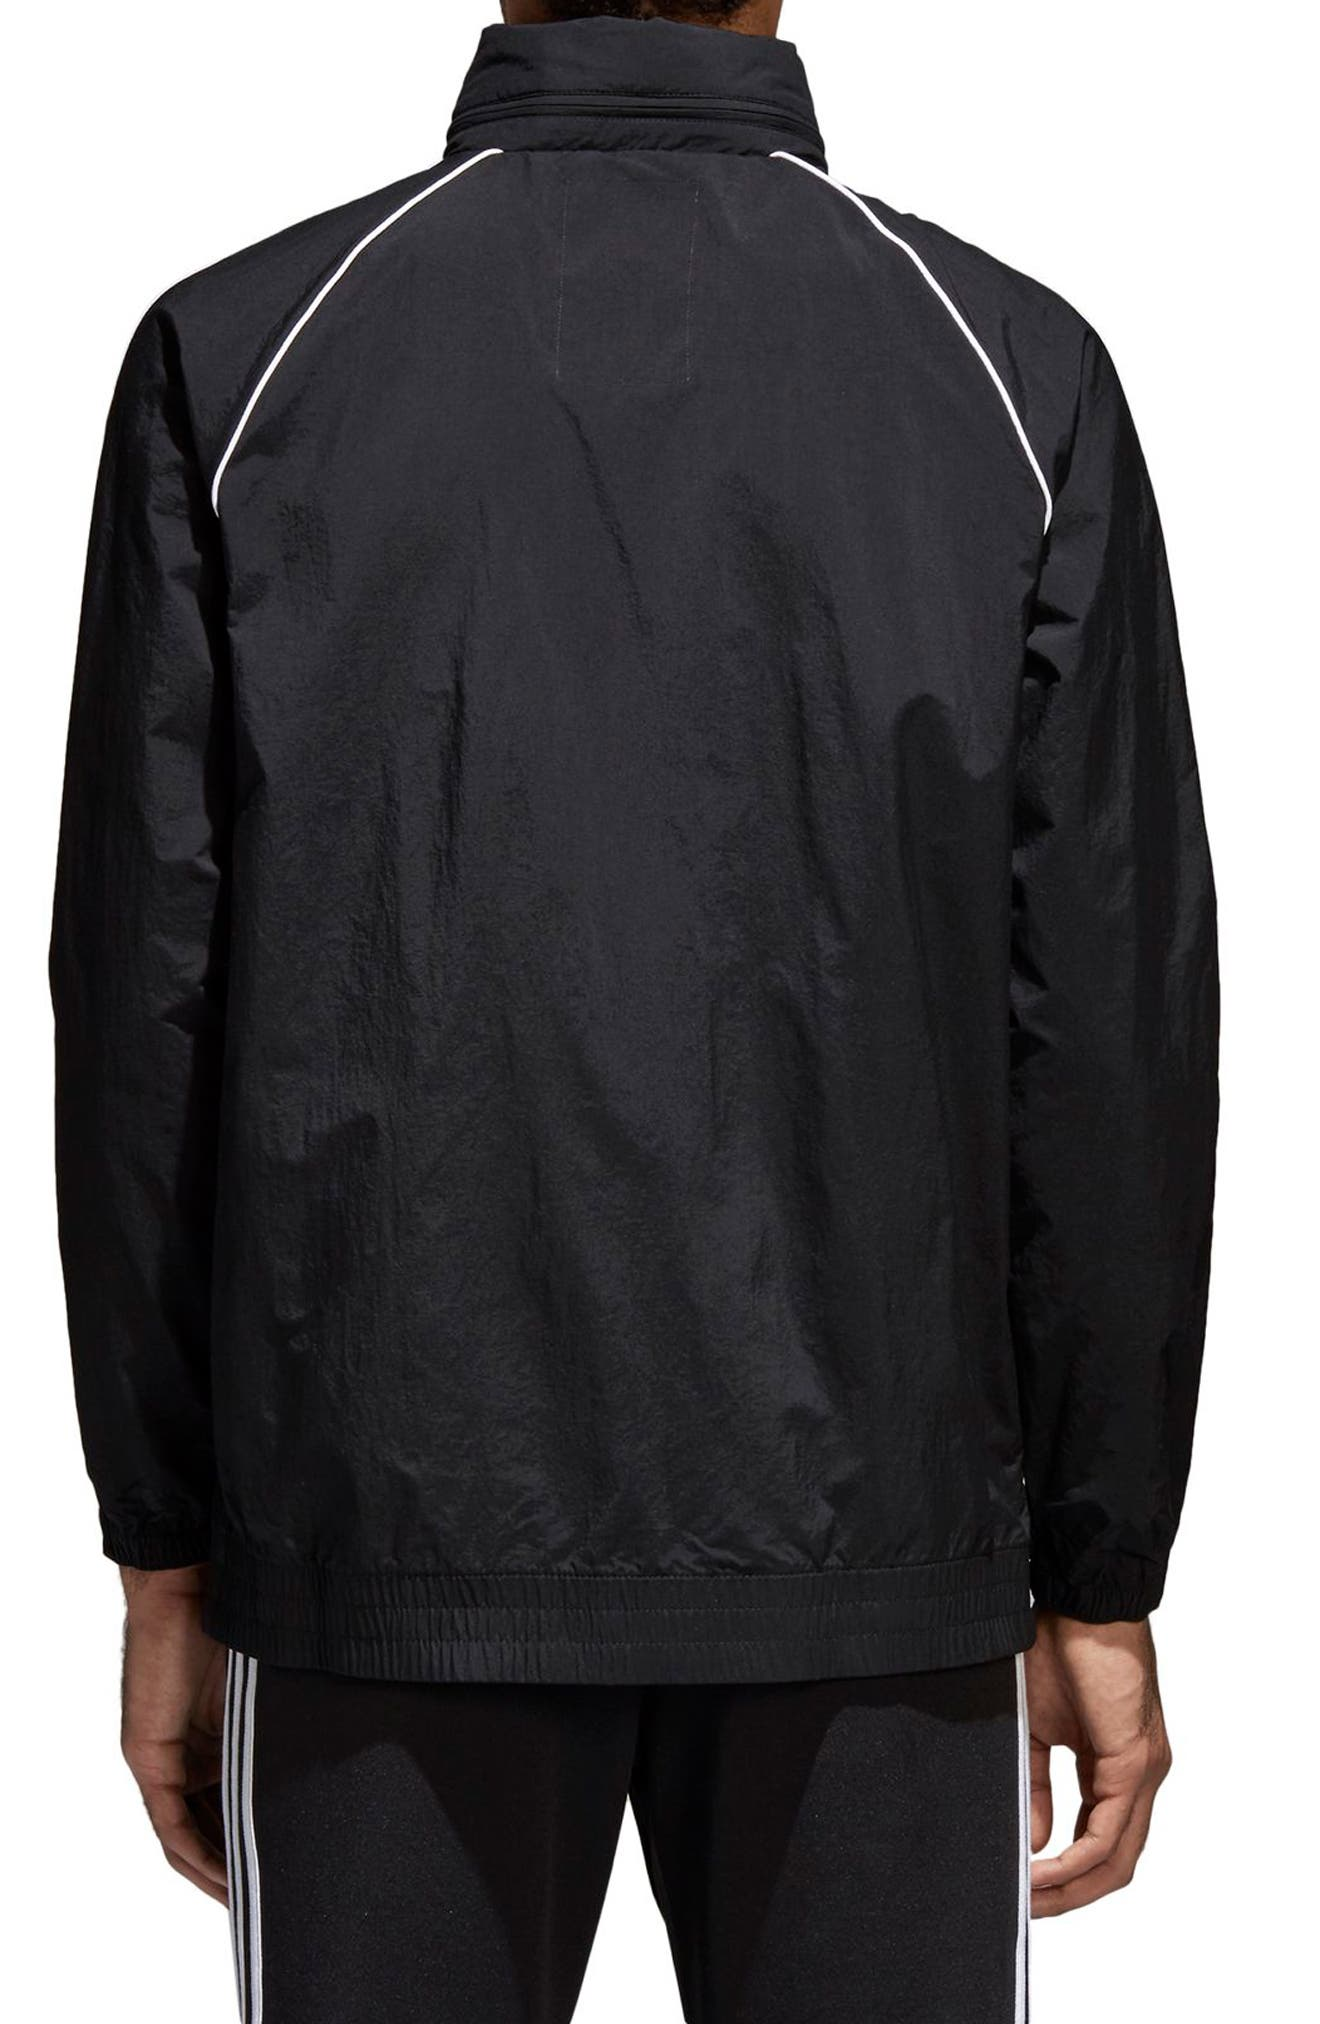 SST Windbreaker,                             Alternate thumbnail 2, color,                             BLACK